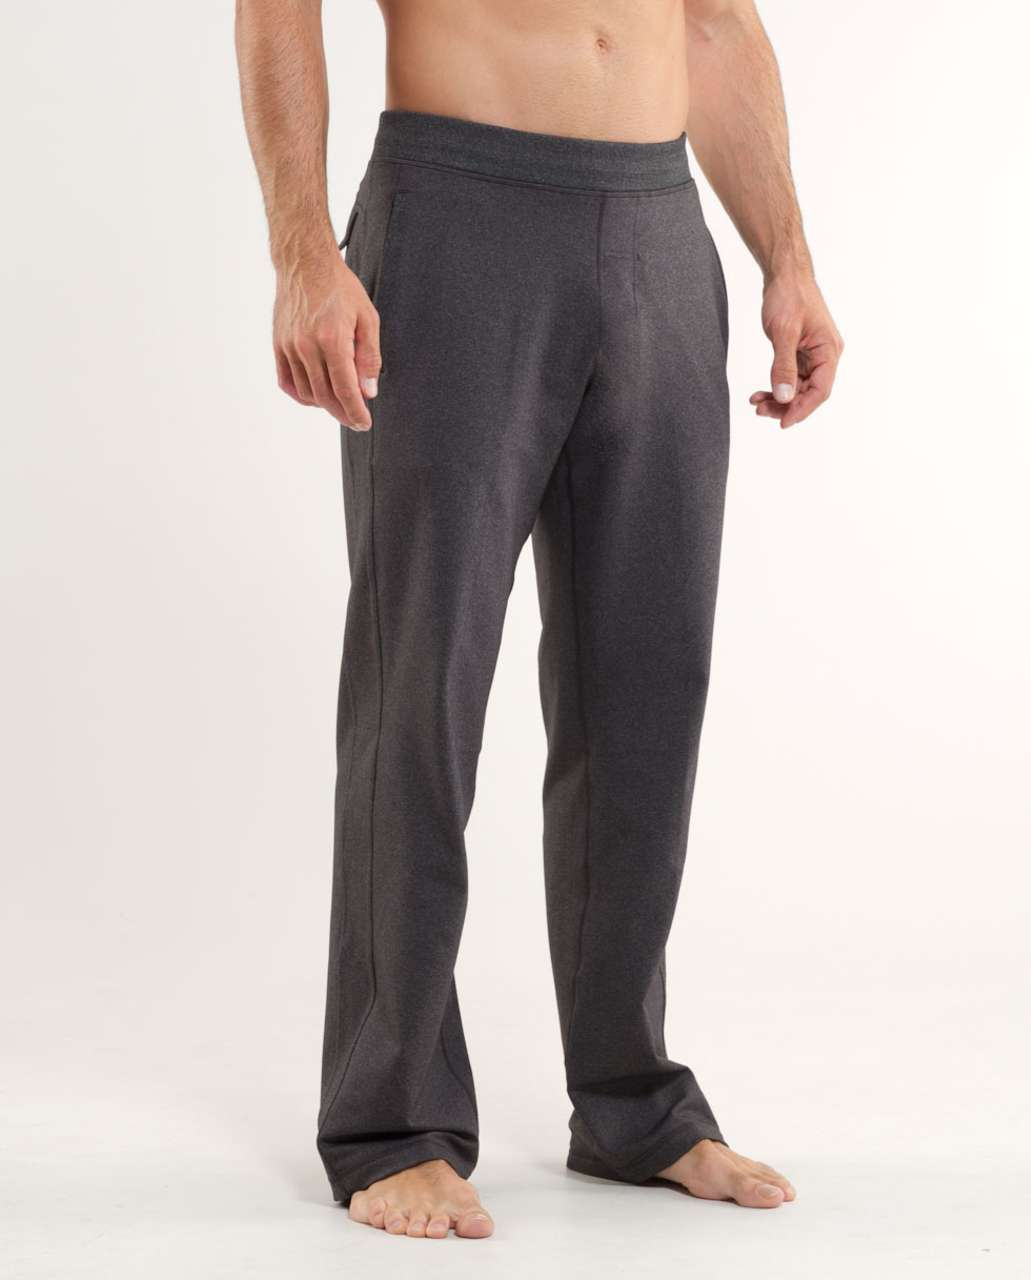 4d75e63b89 Lululemon Kung Fu Pant (Regular) - Heathered Black - lulu fanatics